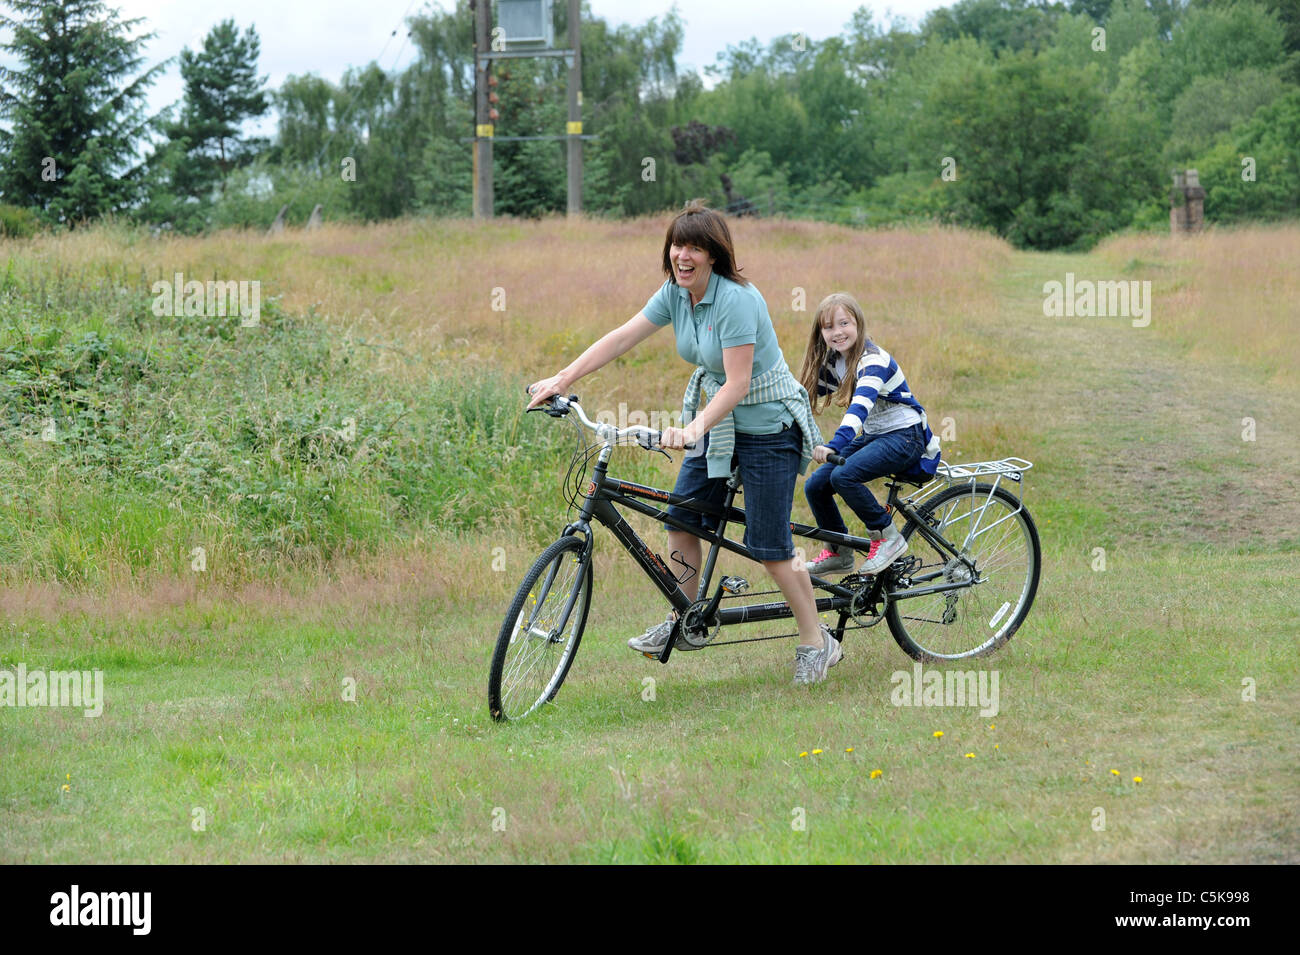 Woman and child having fun on tandem bicycle - Stock Image